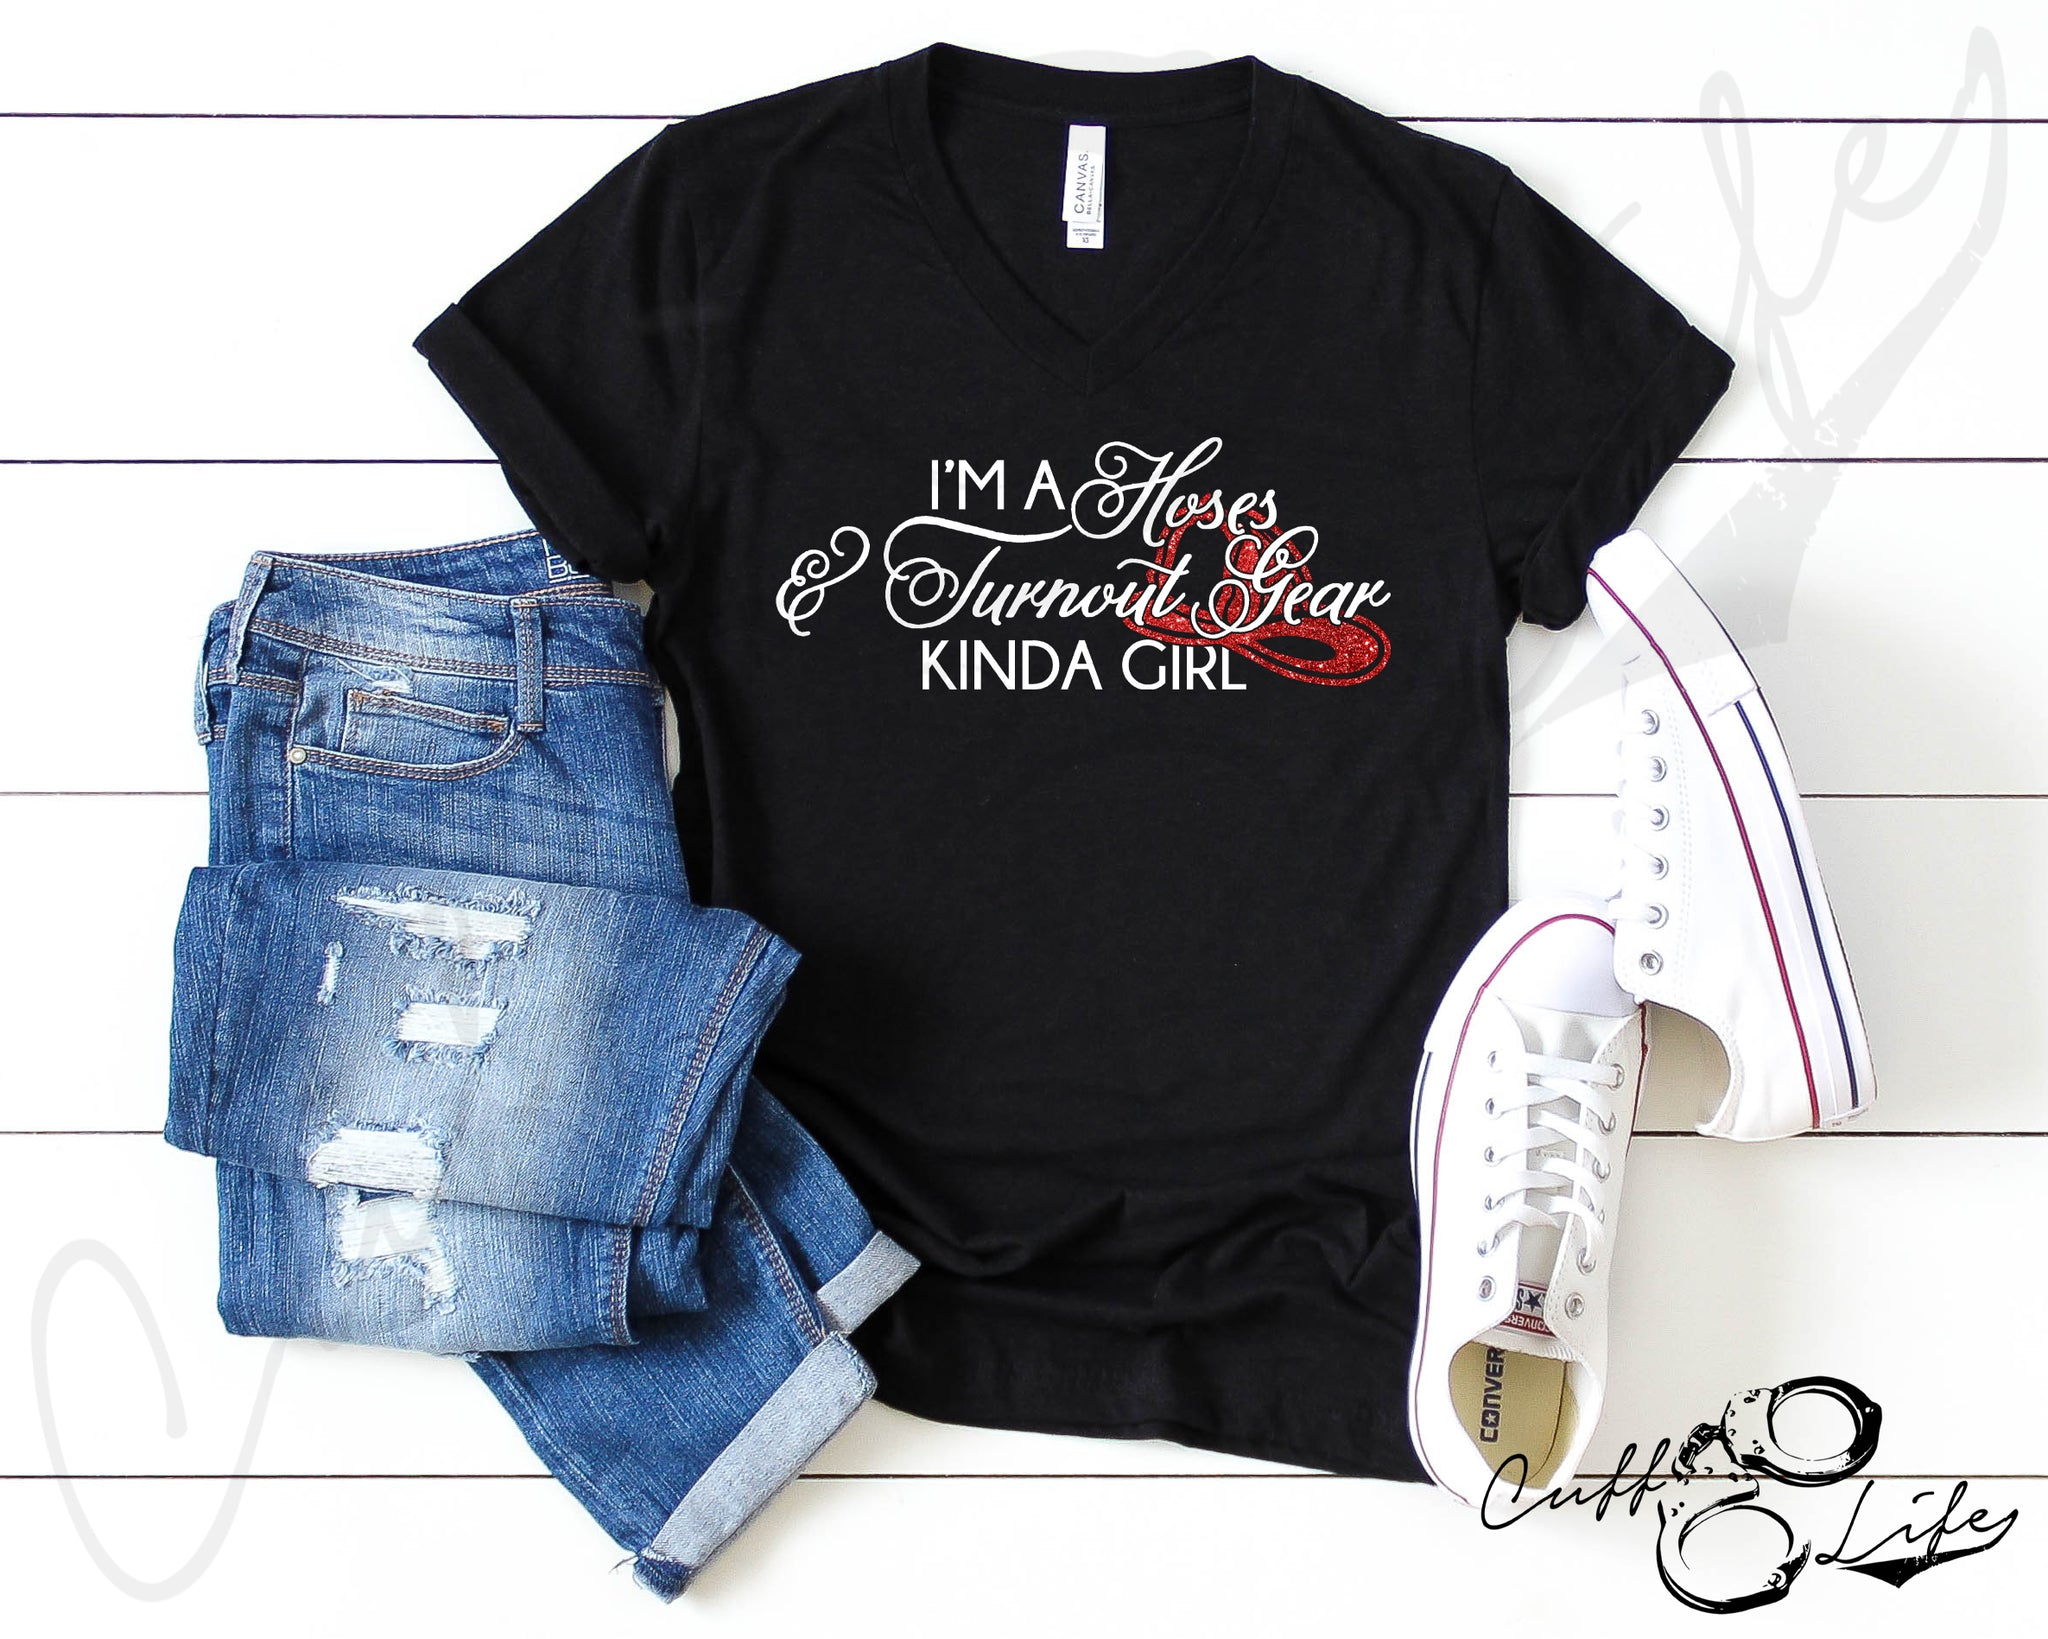 Hoses & Turnout Gear © - Boyfriend Fit V-Neck Tee